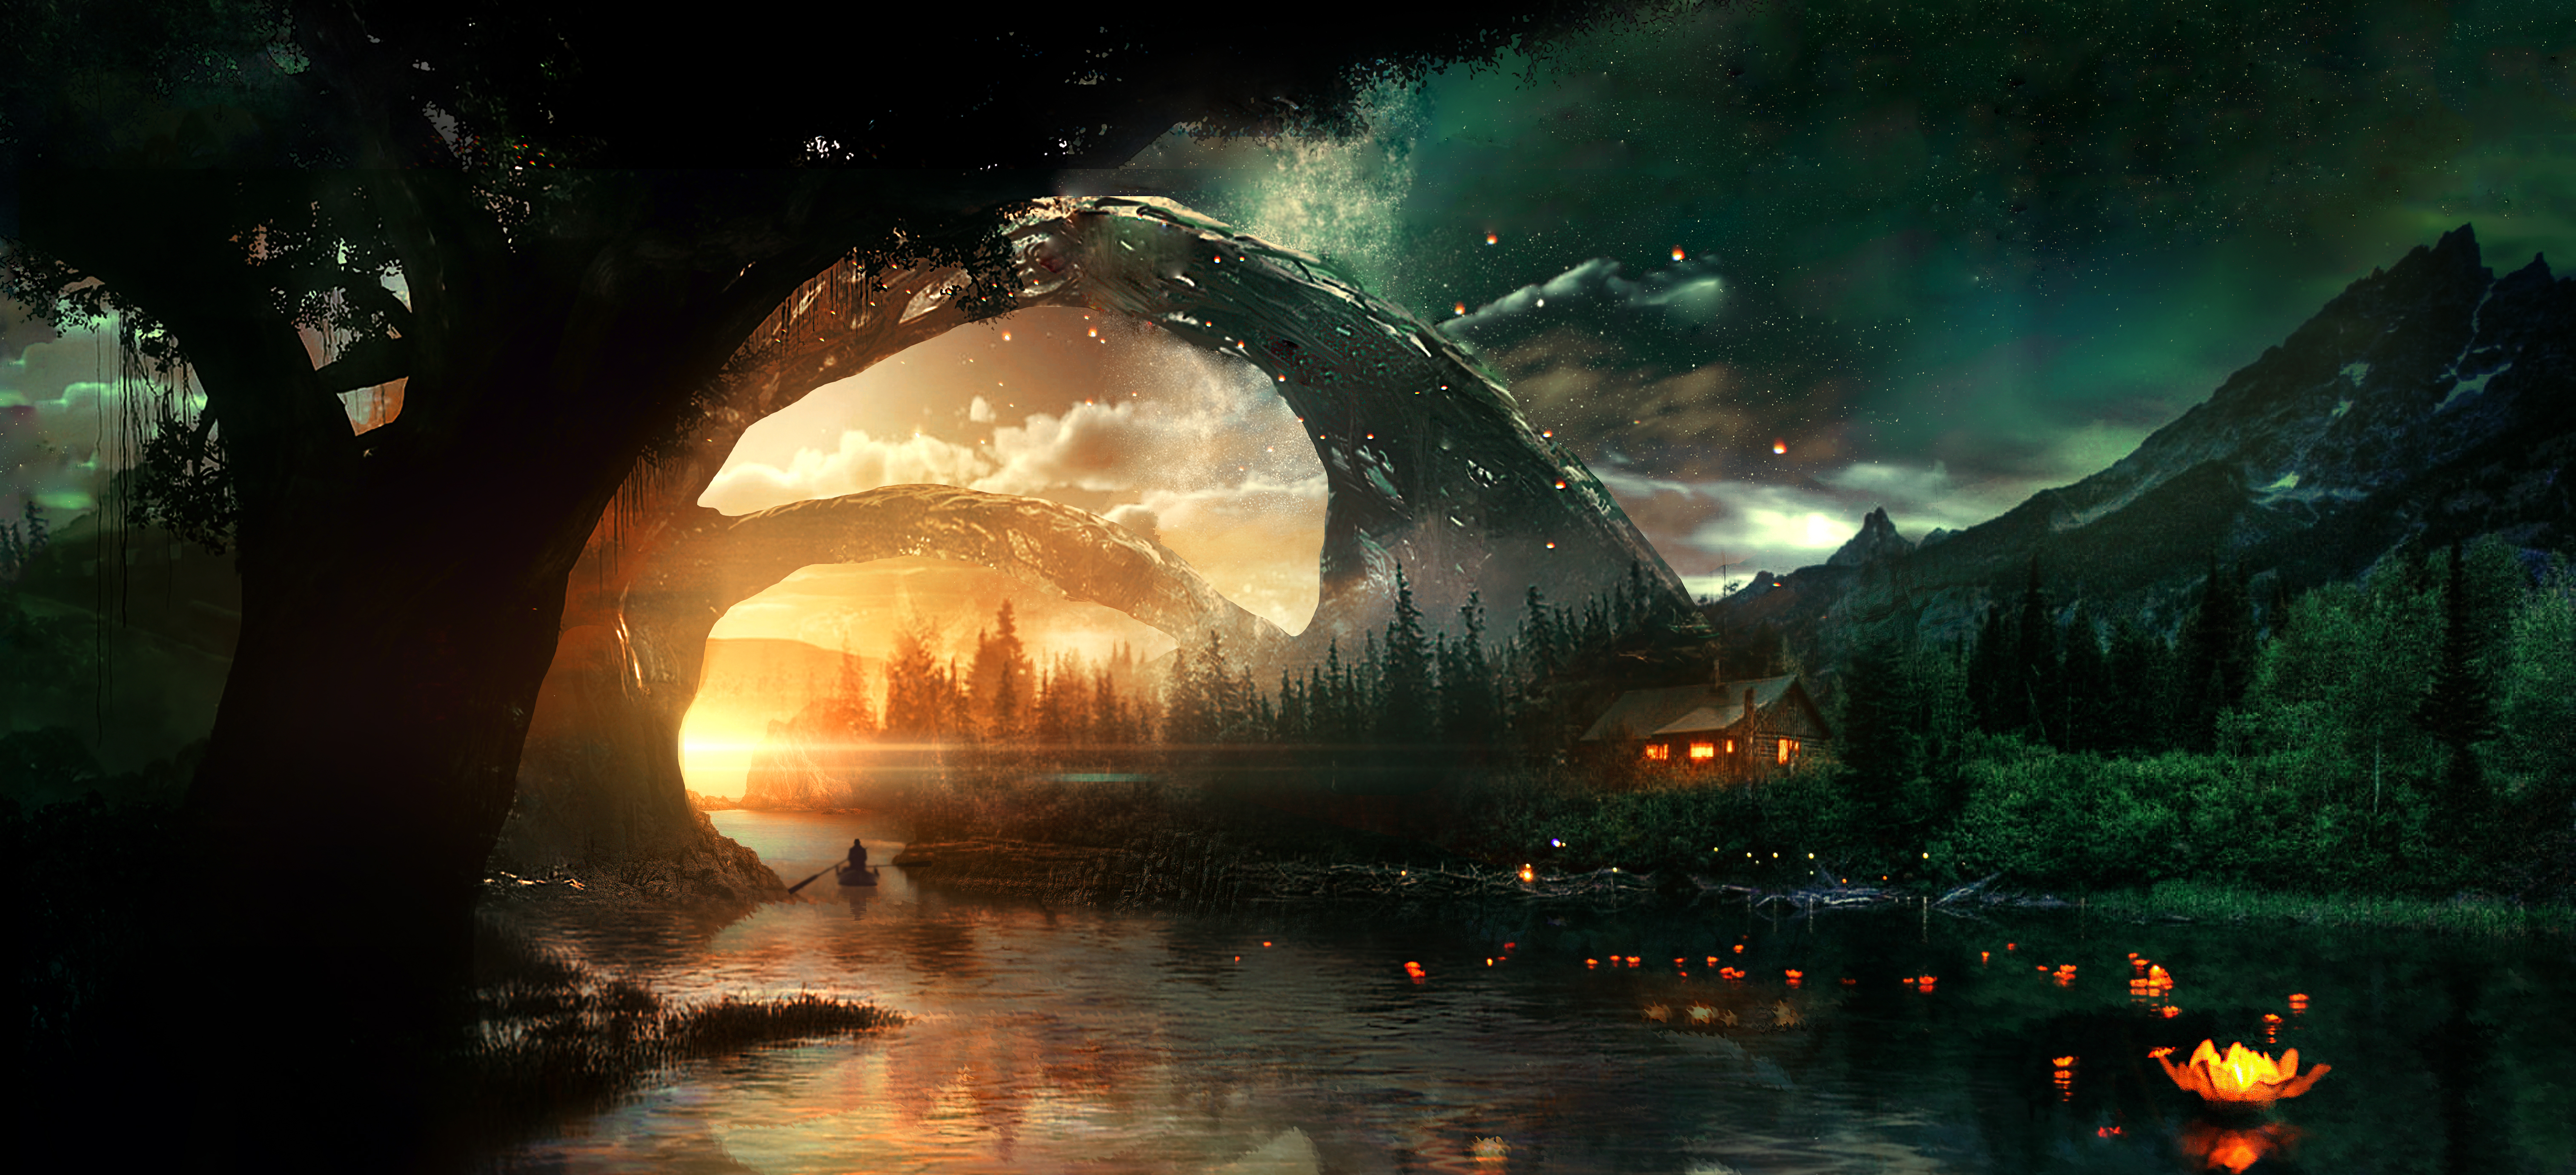 121838 download wallpaper Rivers, Art, Night, Starry Sky, Small House, Lodge, Fantastic screensavers and pictures for free